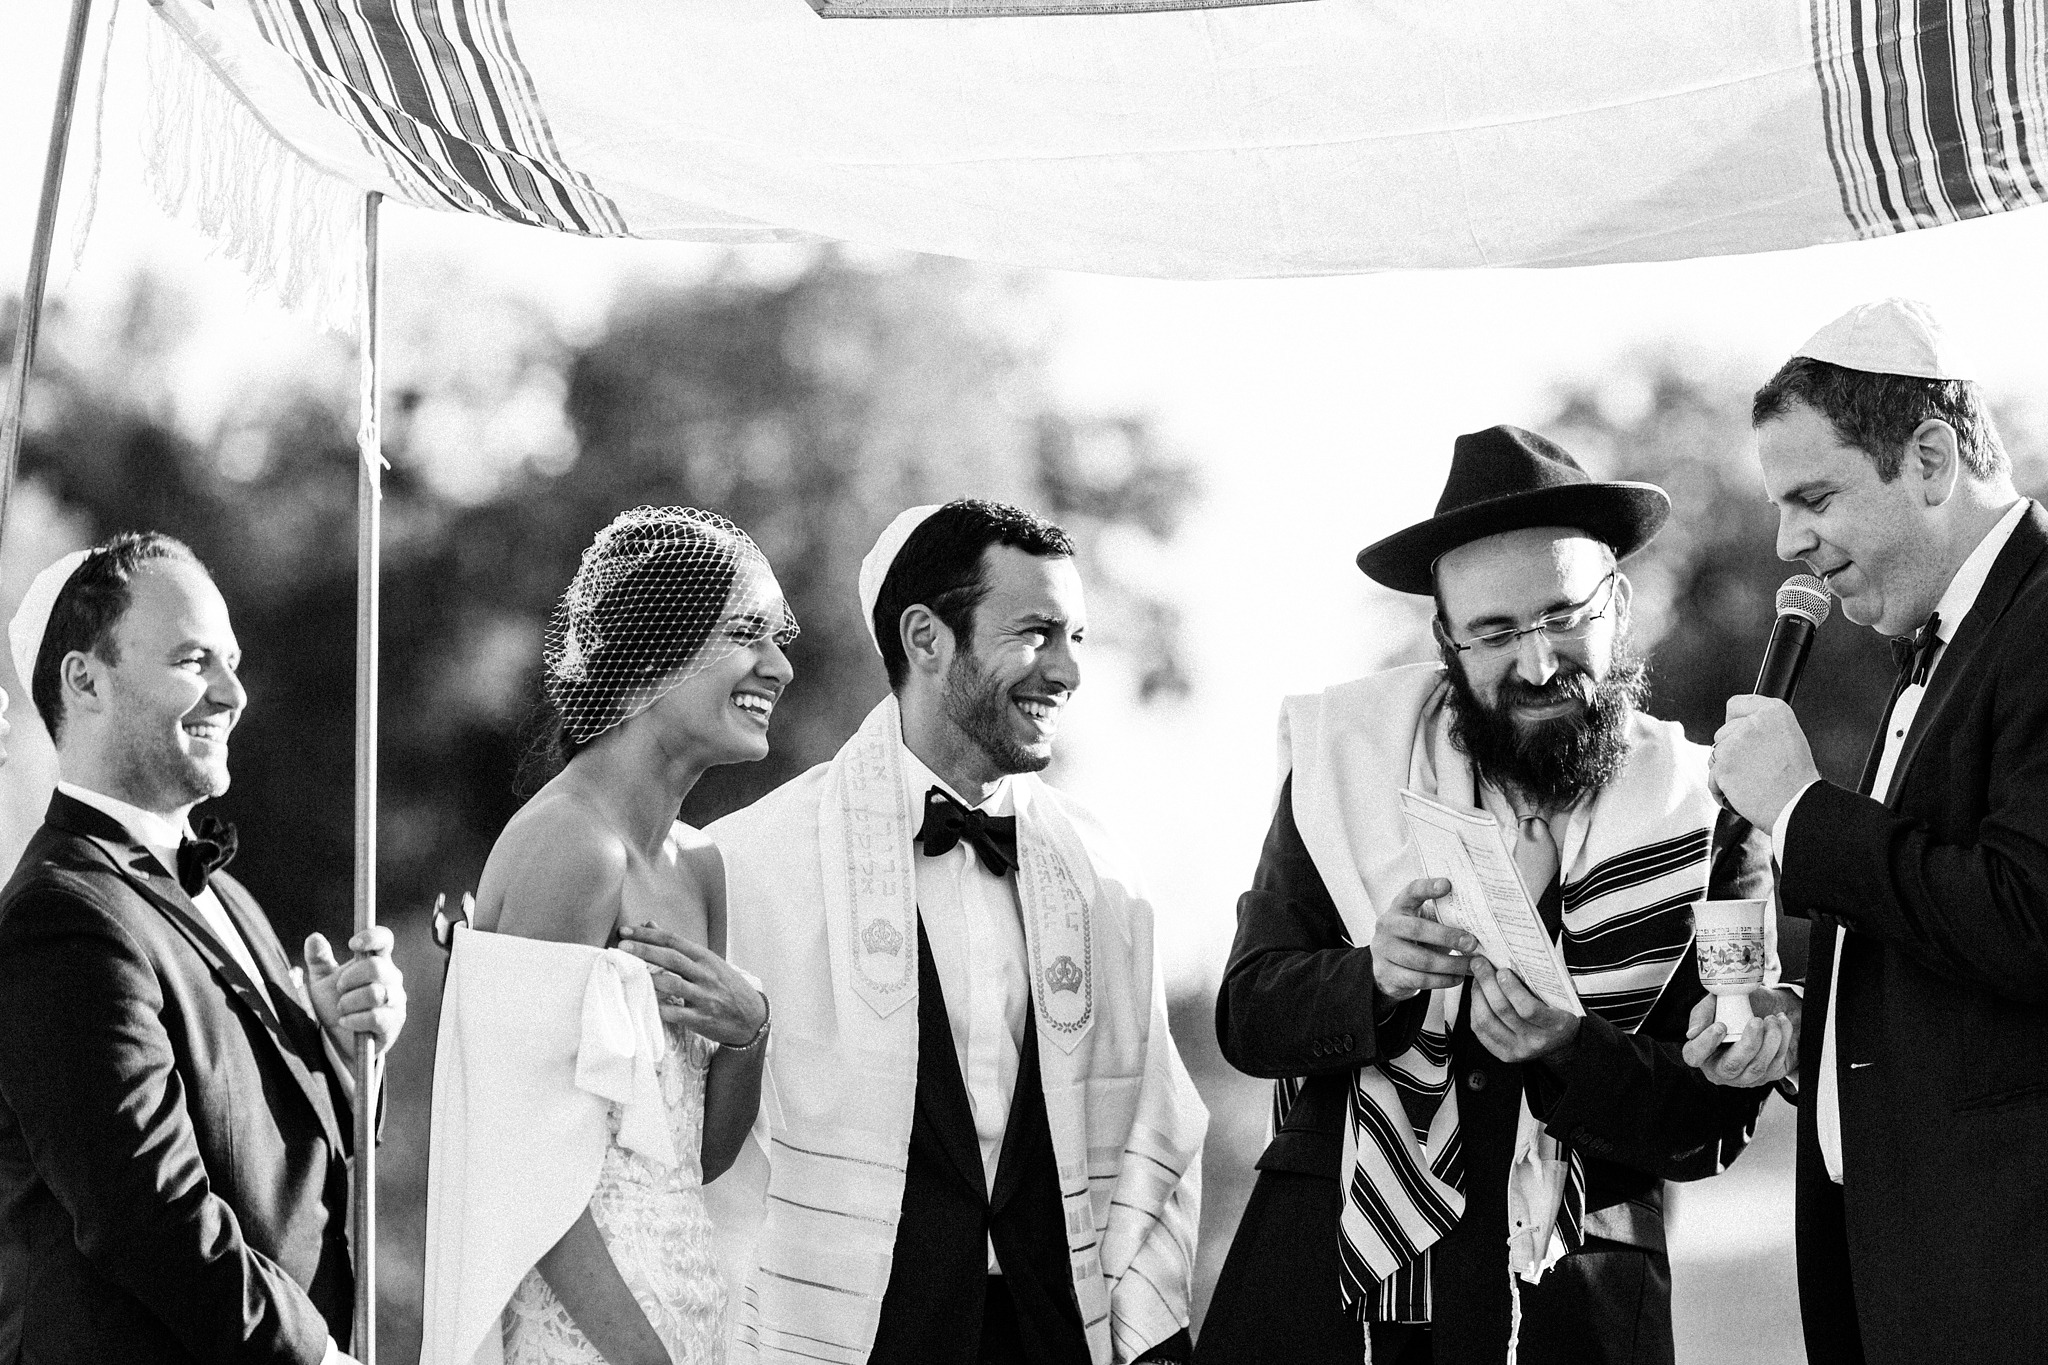 chateau-wedding-france-chanel-eric-as-seen-on-vogue-with-sarah-falugo-photographer_0113